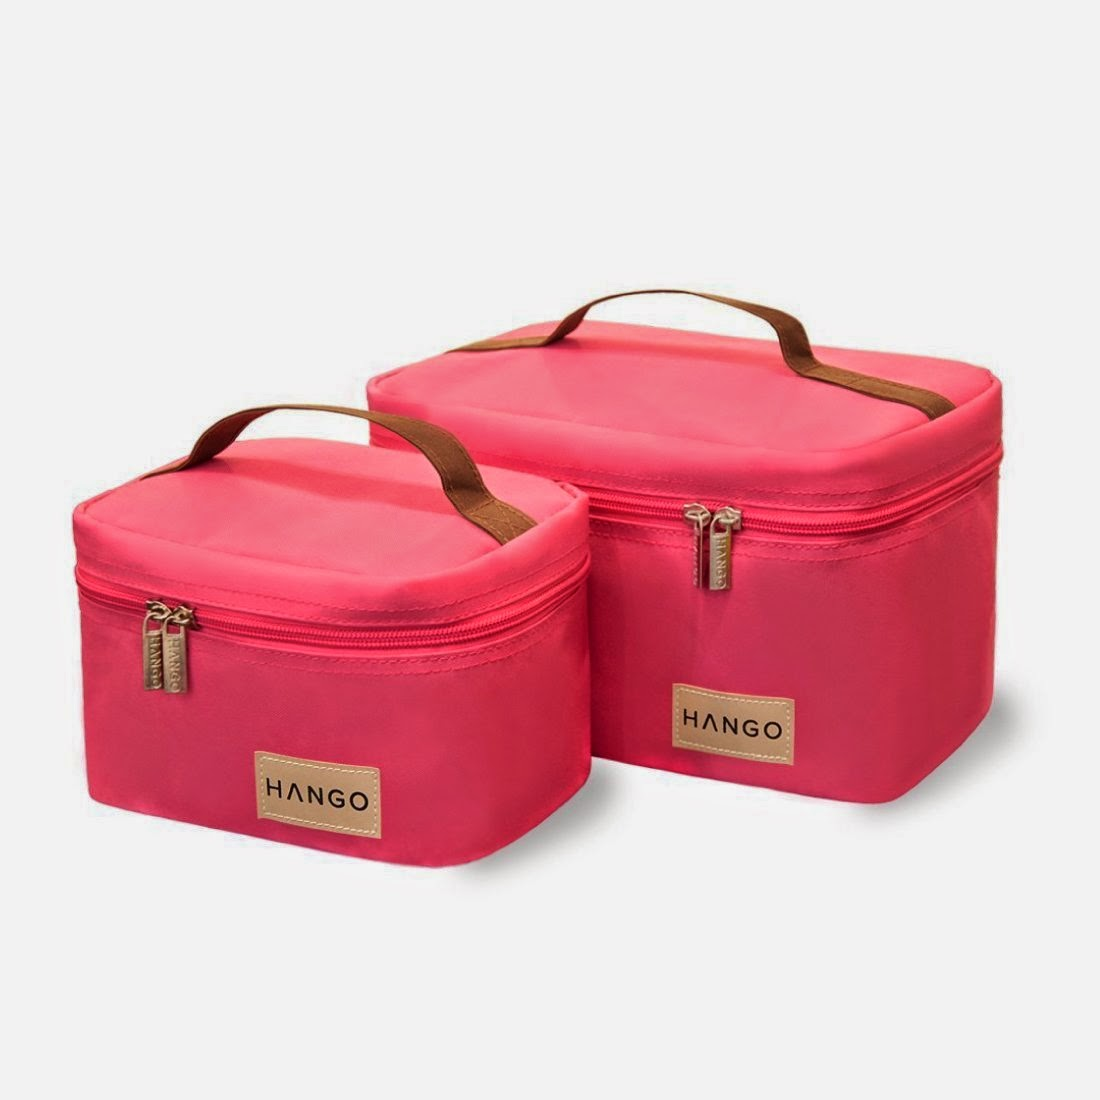 Lunch Bag Hango - Set of Two Sizes